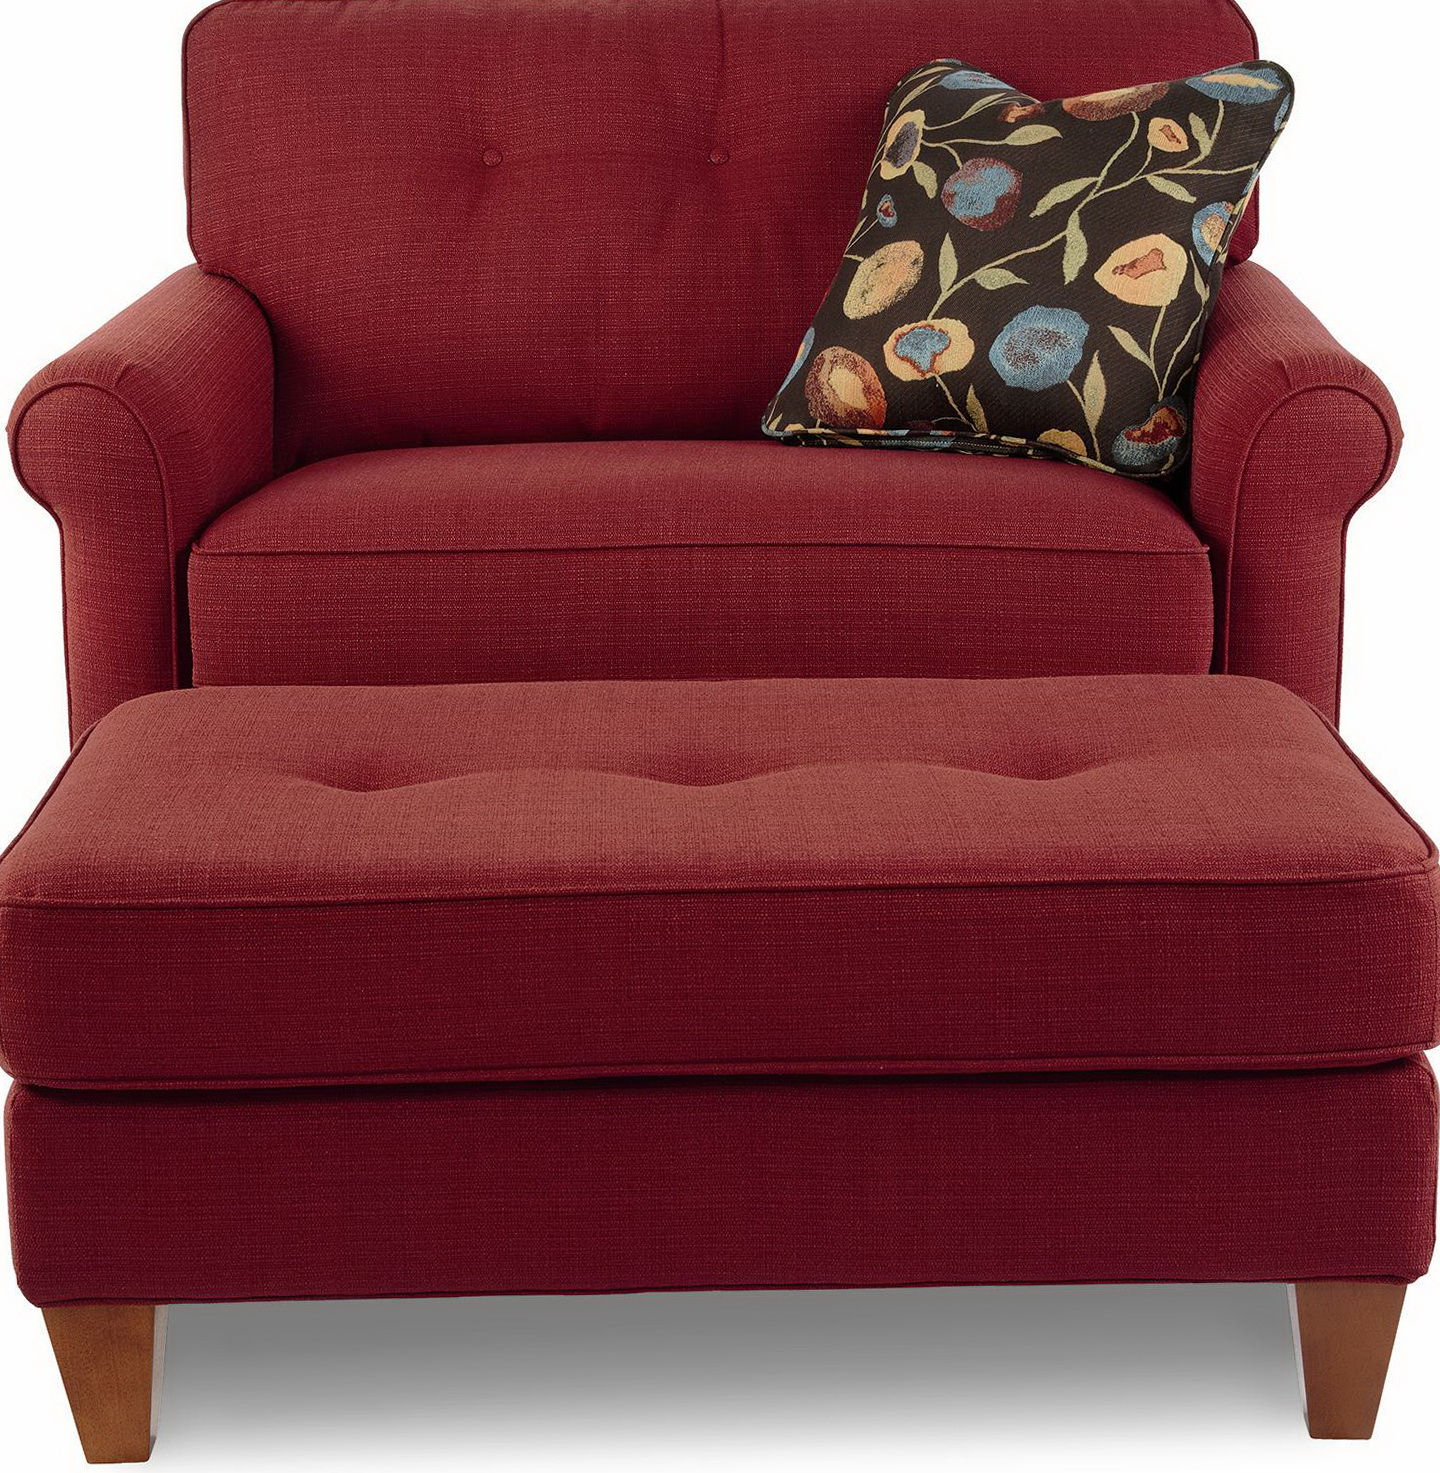 Oversized Chair And Ottoman Sets Home Design Ideas